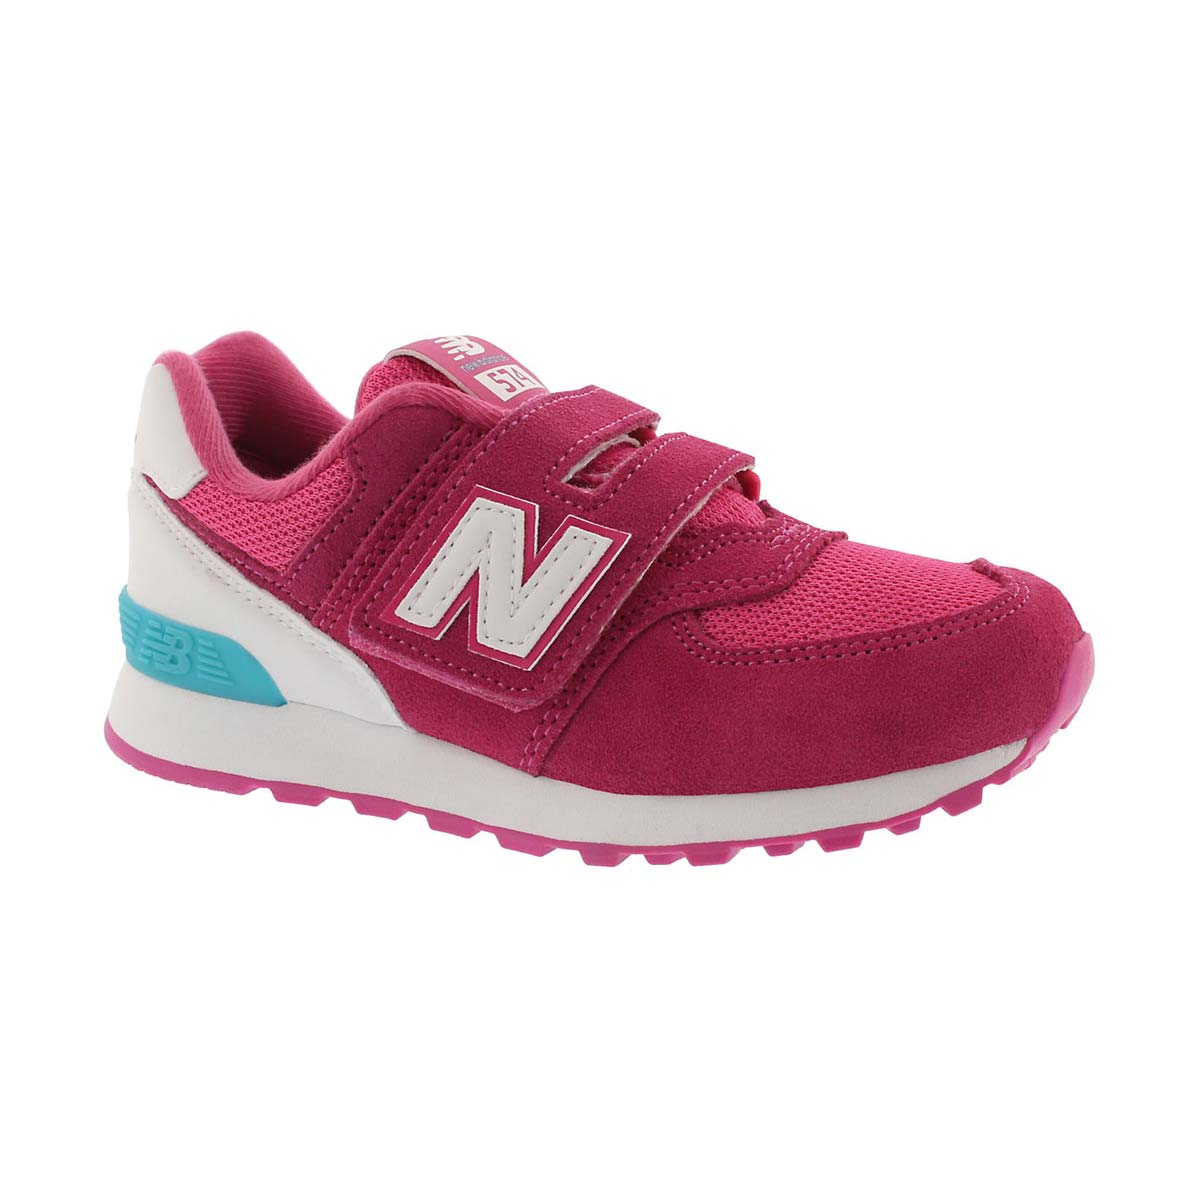 Girls' 574 pink/white sneakers